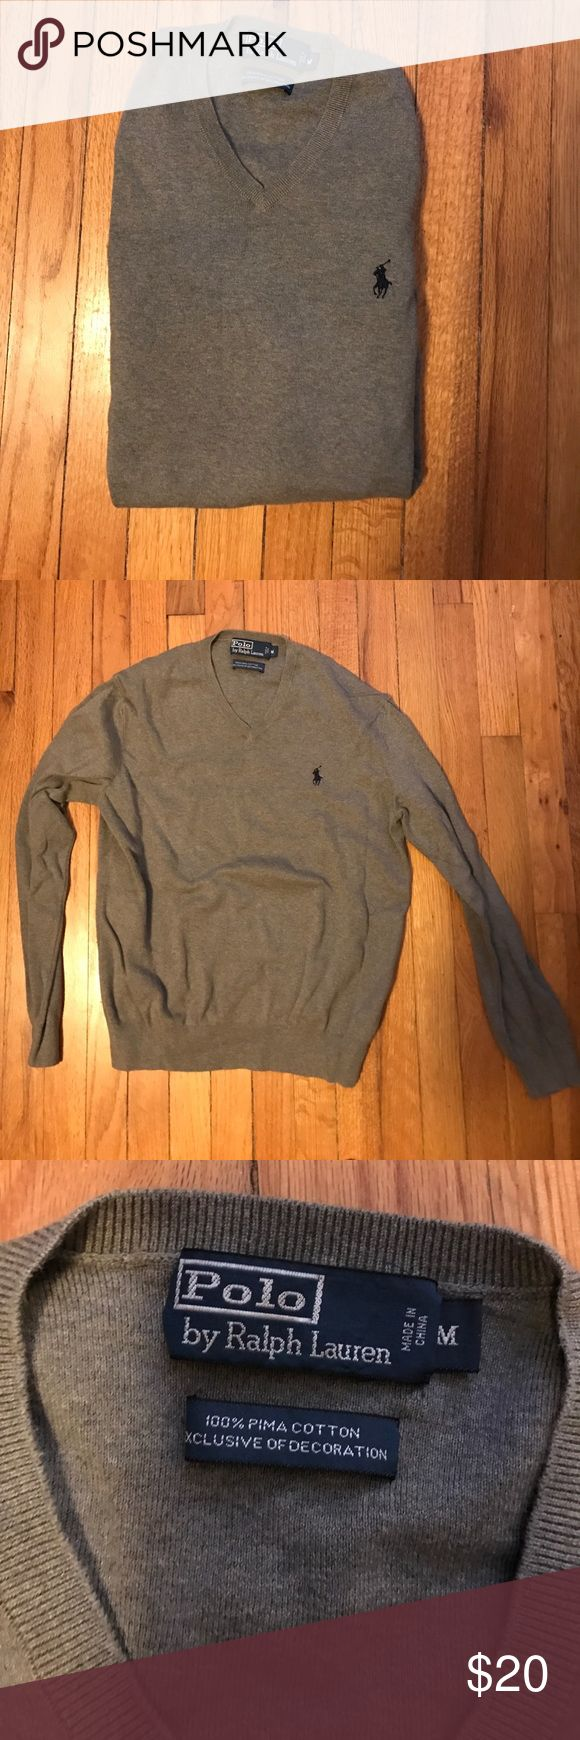 Polo Men's V neck Sweater Grey with blue polo symbol great Used Condition only dry cleaned- live in warm climate now and never wear. Medium 100% Pima cotton Polo by Ralph Lauren Sweaters V-Neck